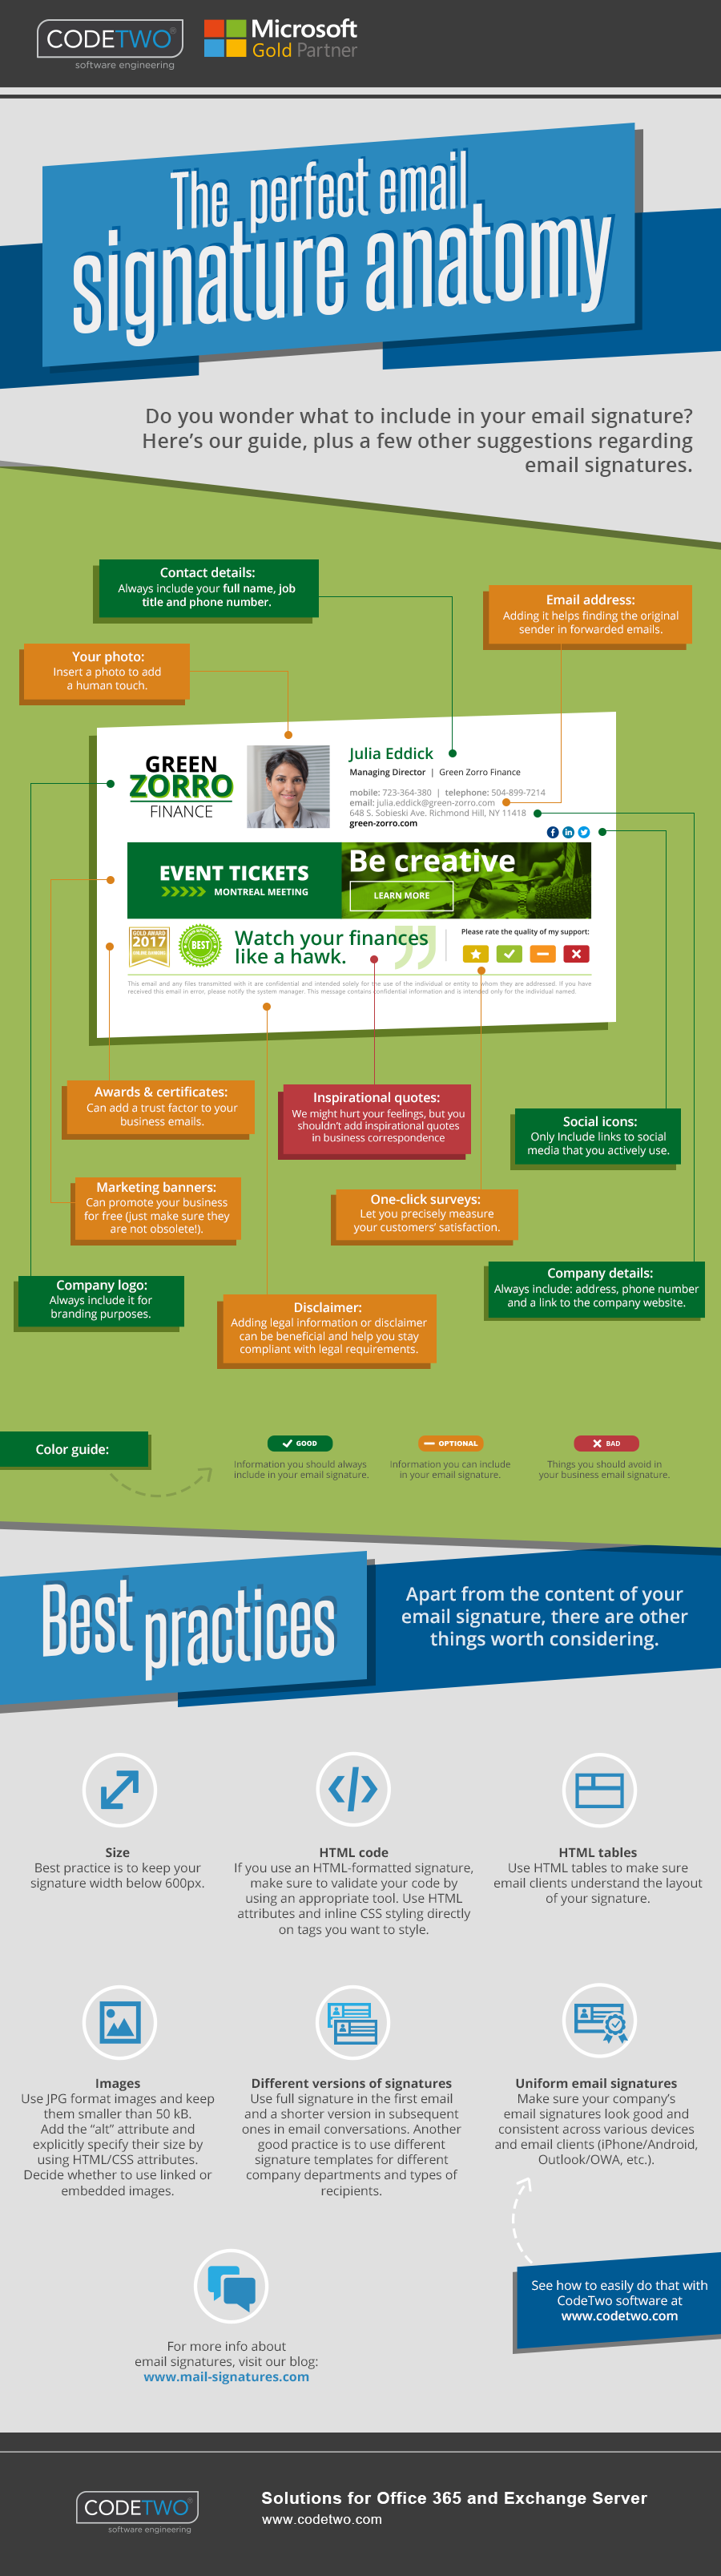 The perfect email signature anatomy | Infographic